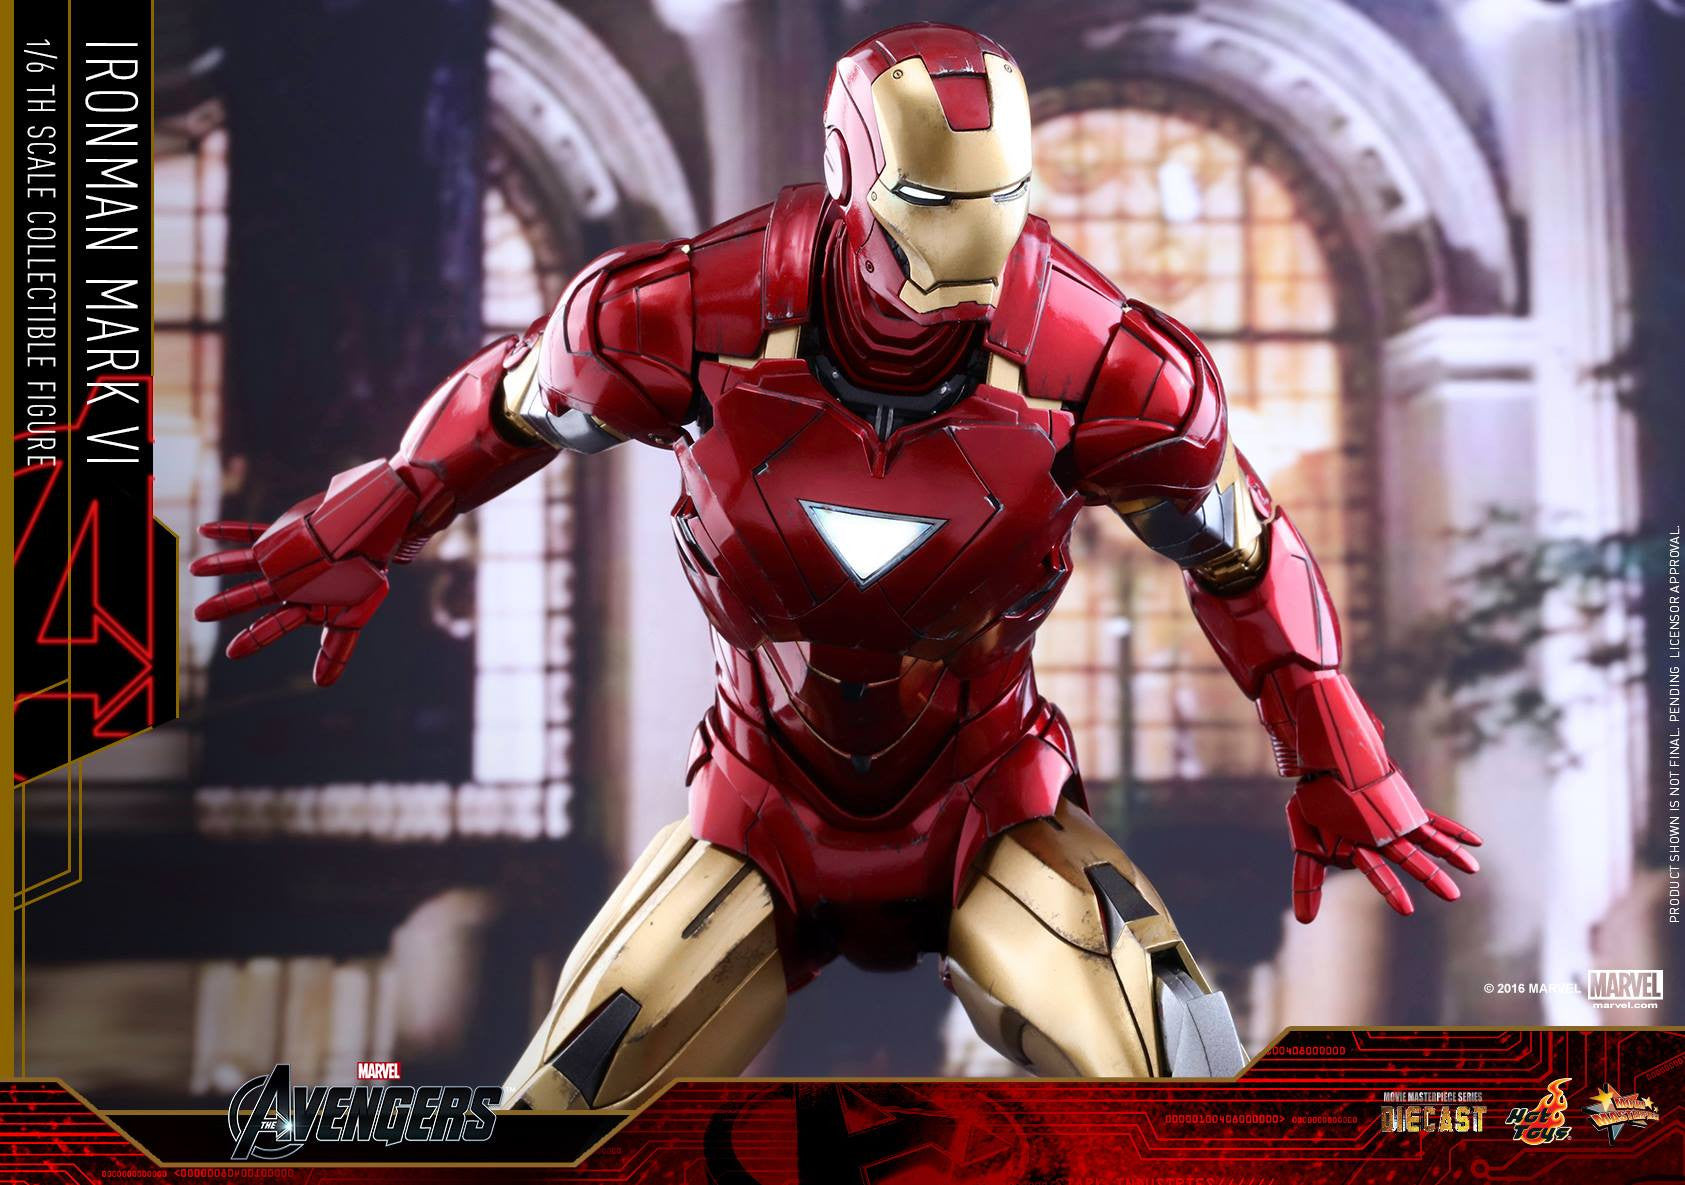 Hot Toys - MMS378D17 - The Avengers - Iron Man Mark VI (DIECAST) (Normal Edition) - Marvelous Toys - 18